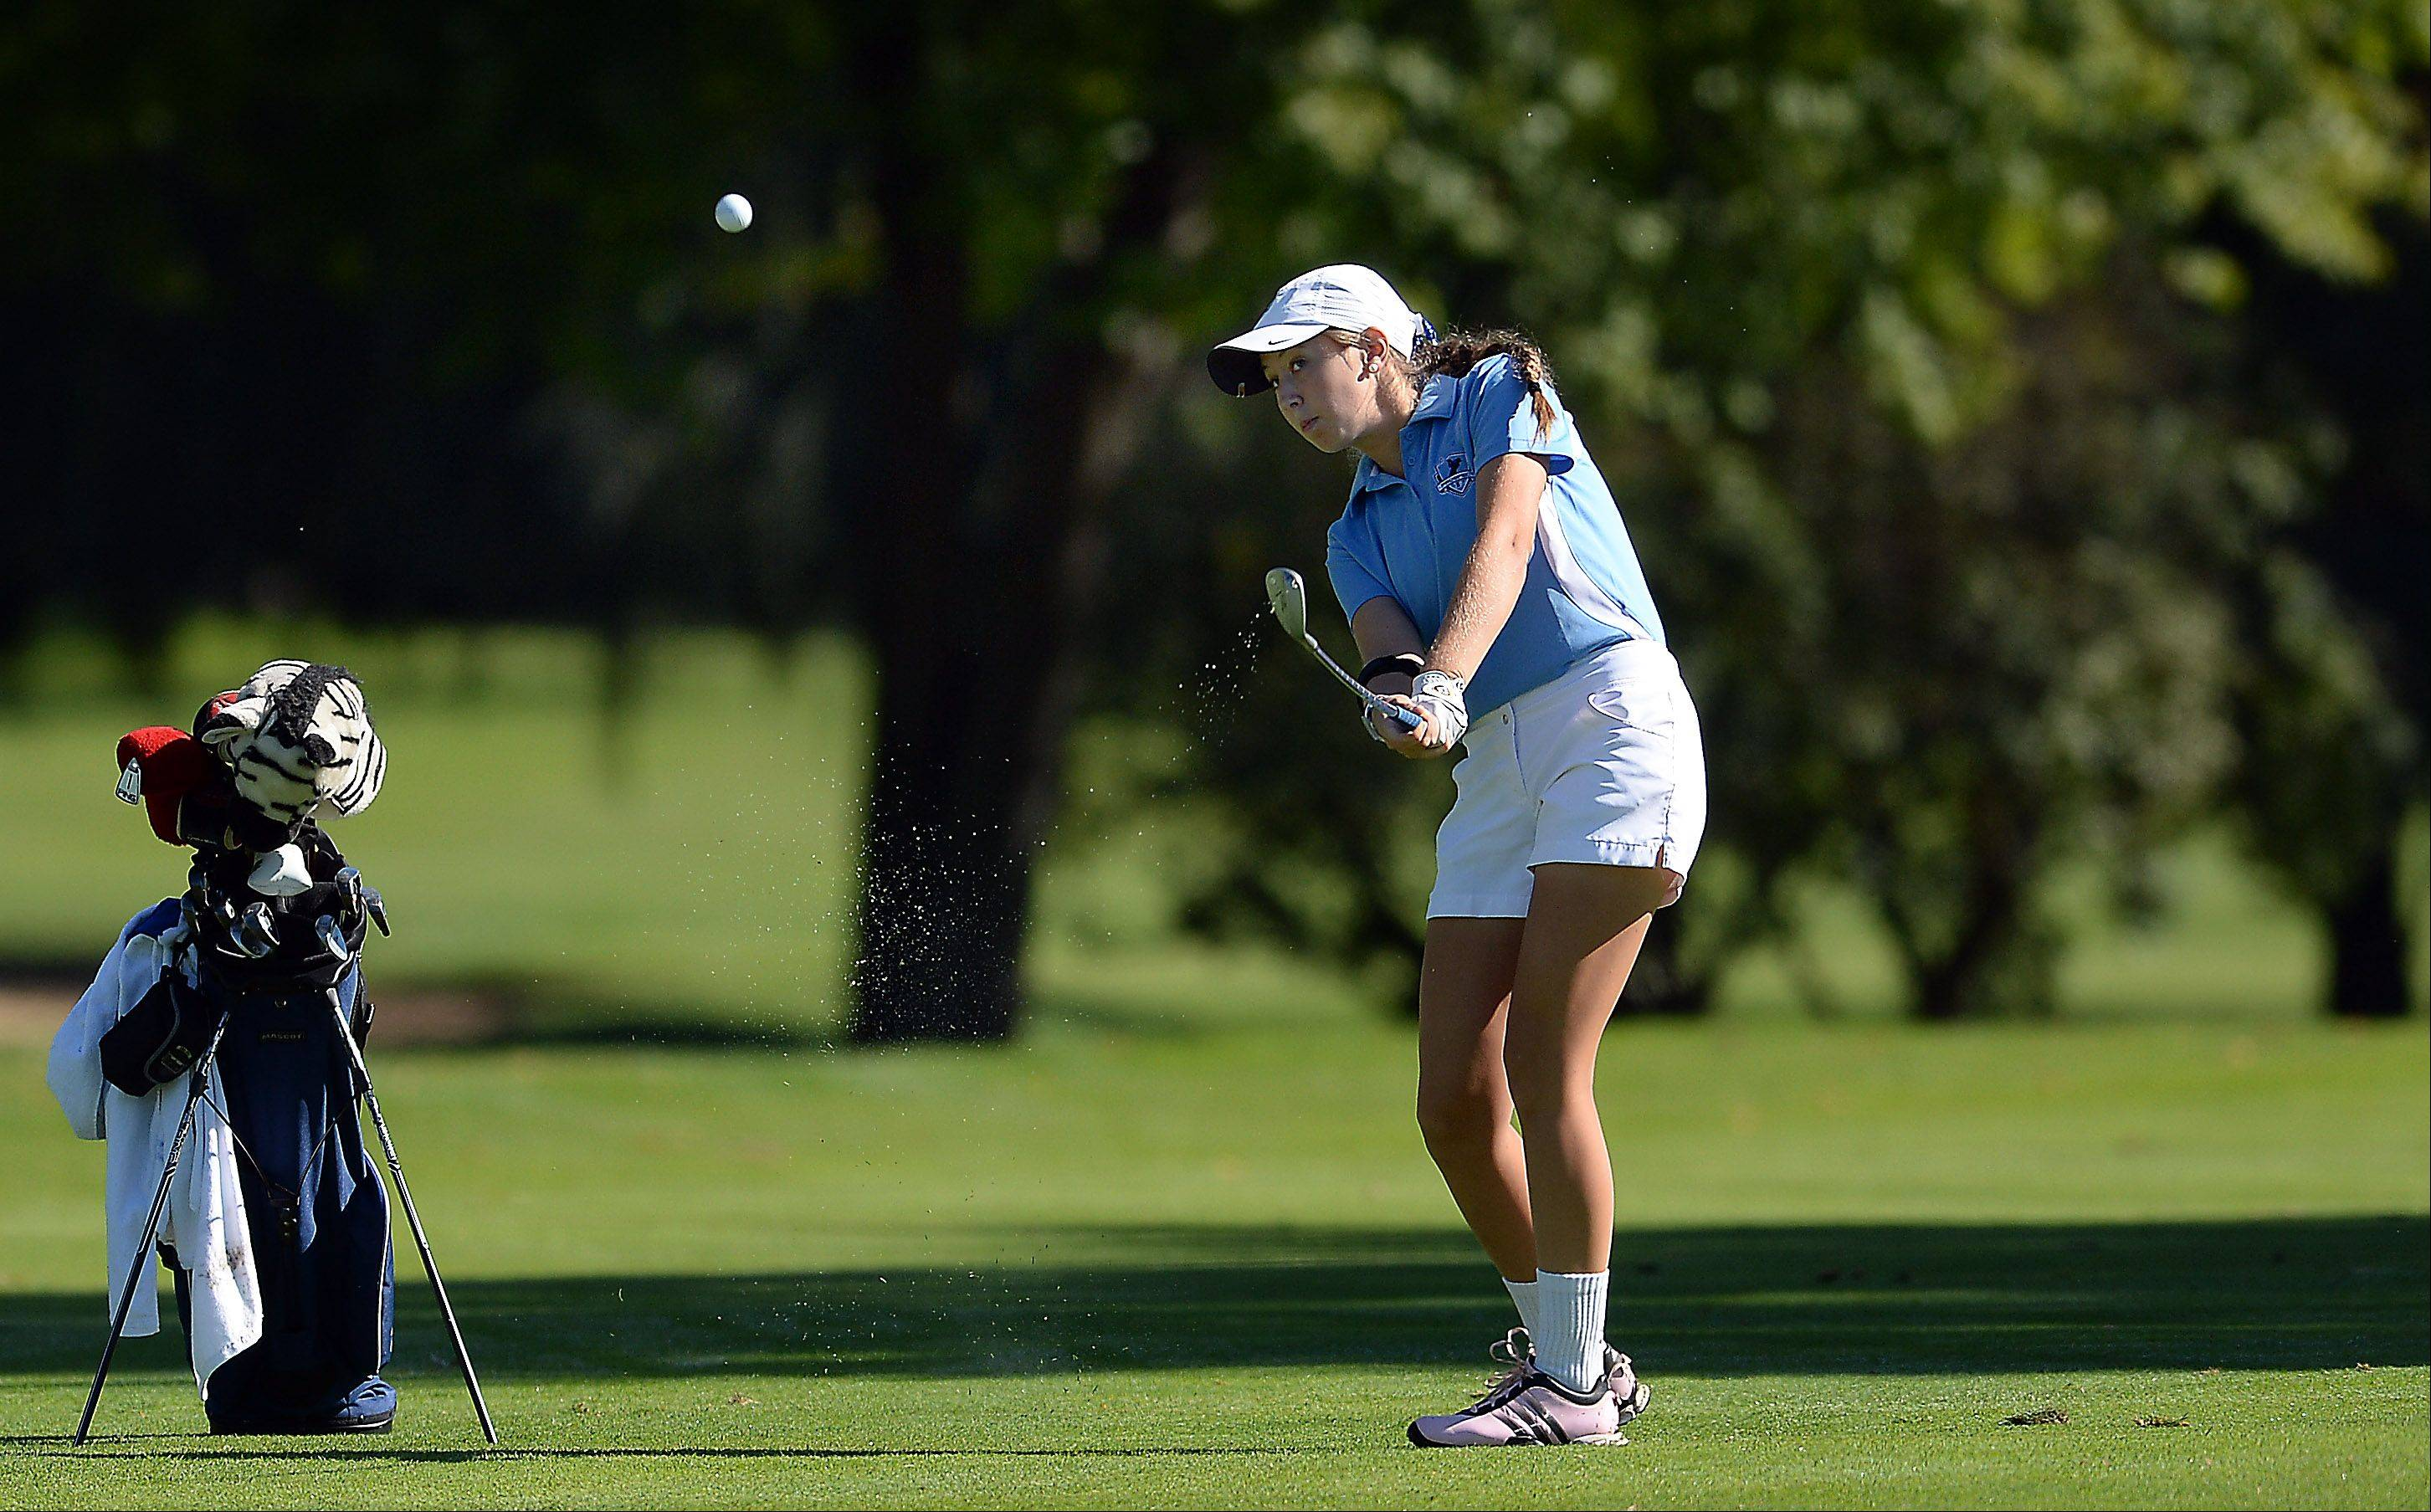 Prospect's Kiley Walsh chips up her shot on the green on hole three at the girls varsity golf regional at Mt. Prospect Golf Club on Wednesday.